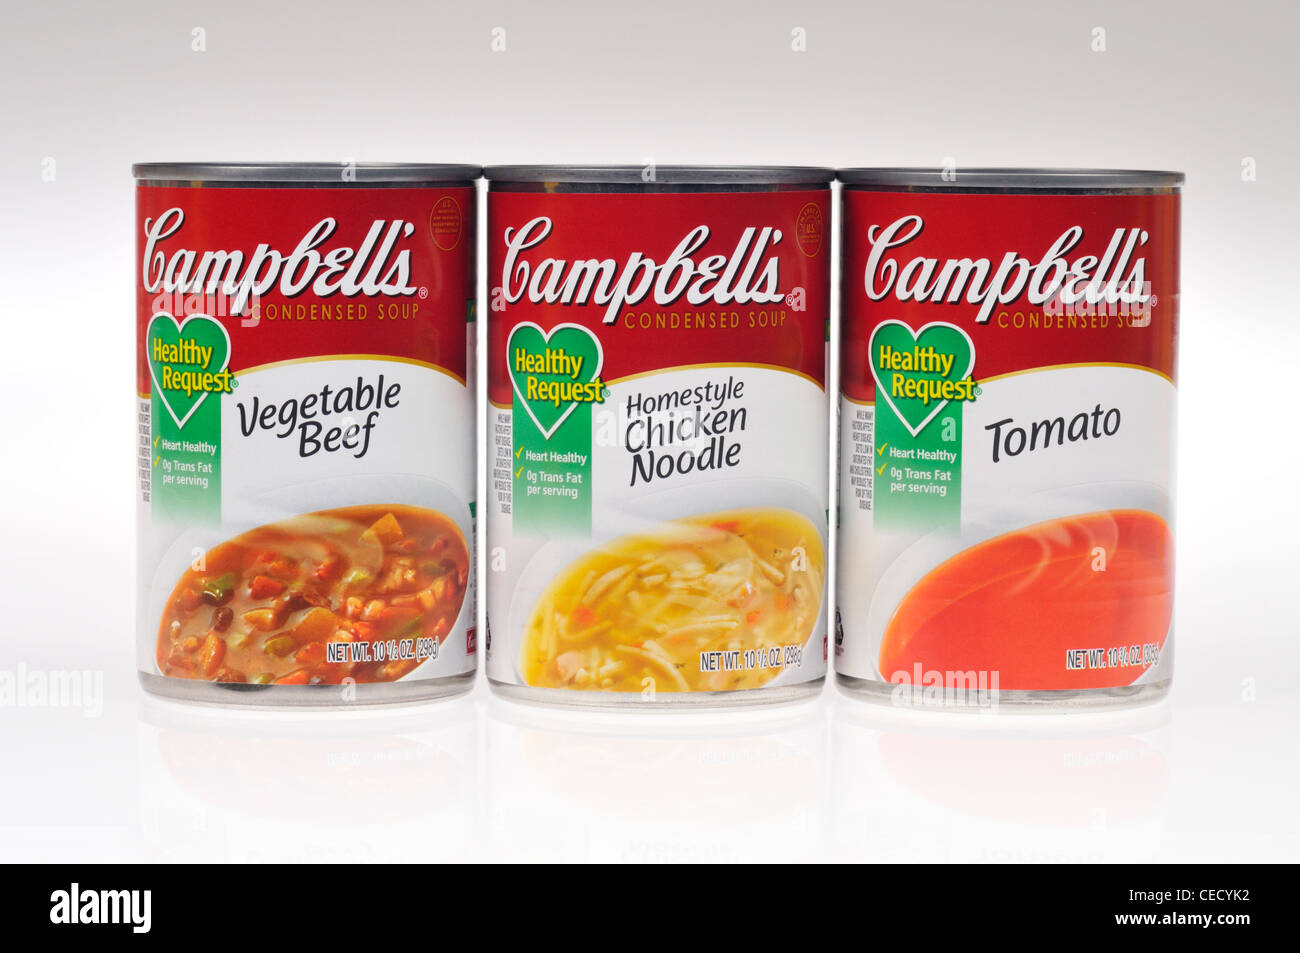 Unopened cans of Campbells healthy request vegetable beef, chicken noodle & tomato soups on white background isolate Stock Photo